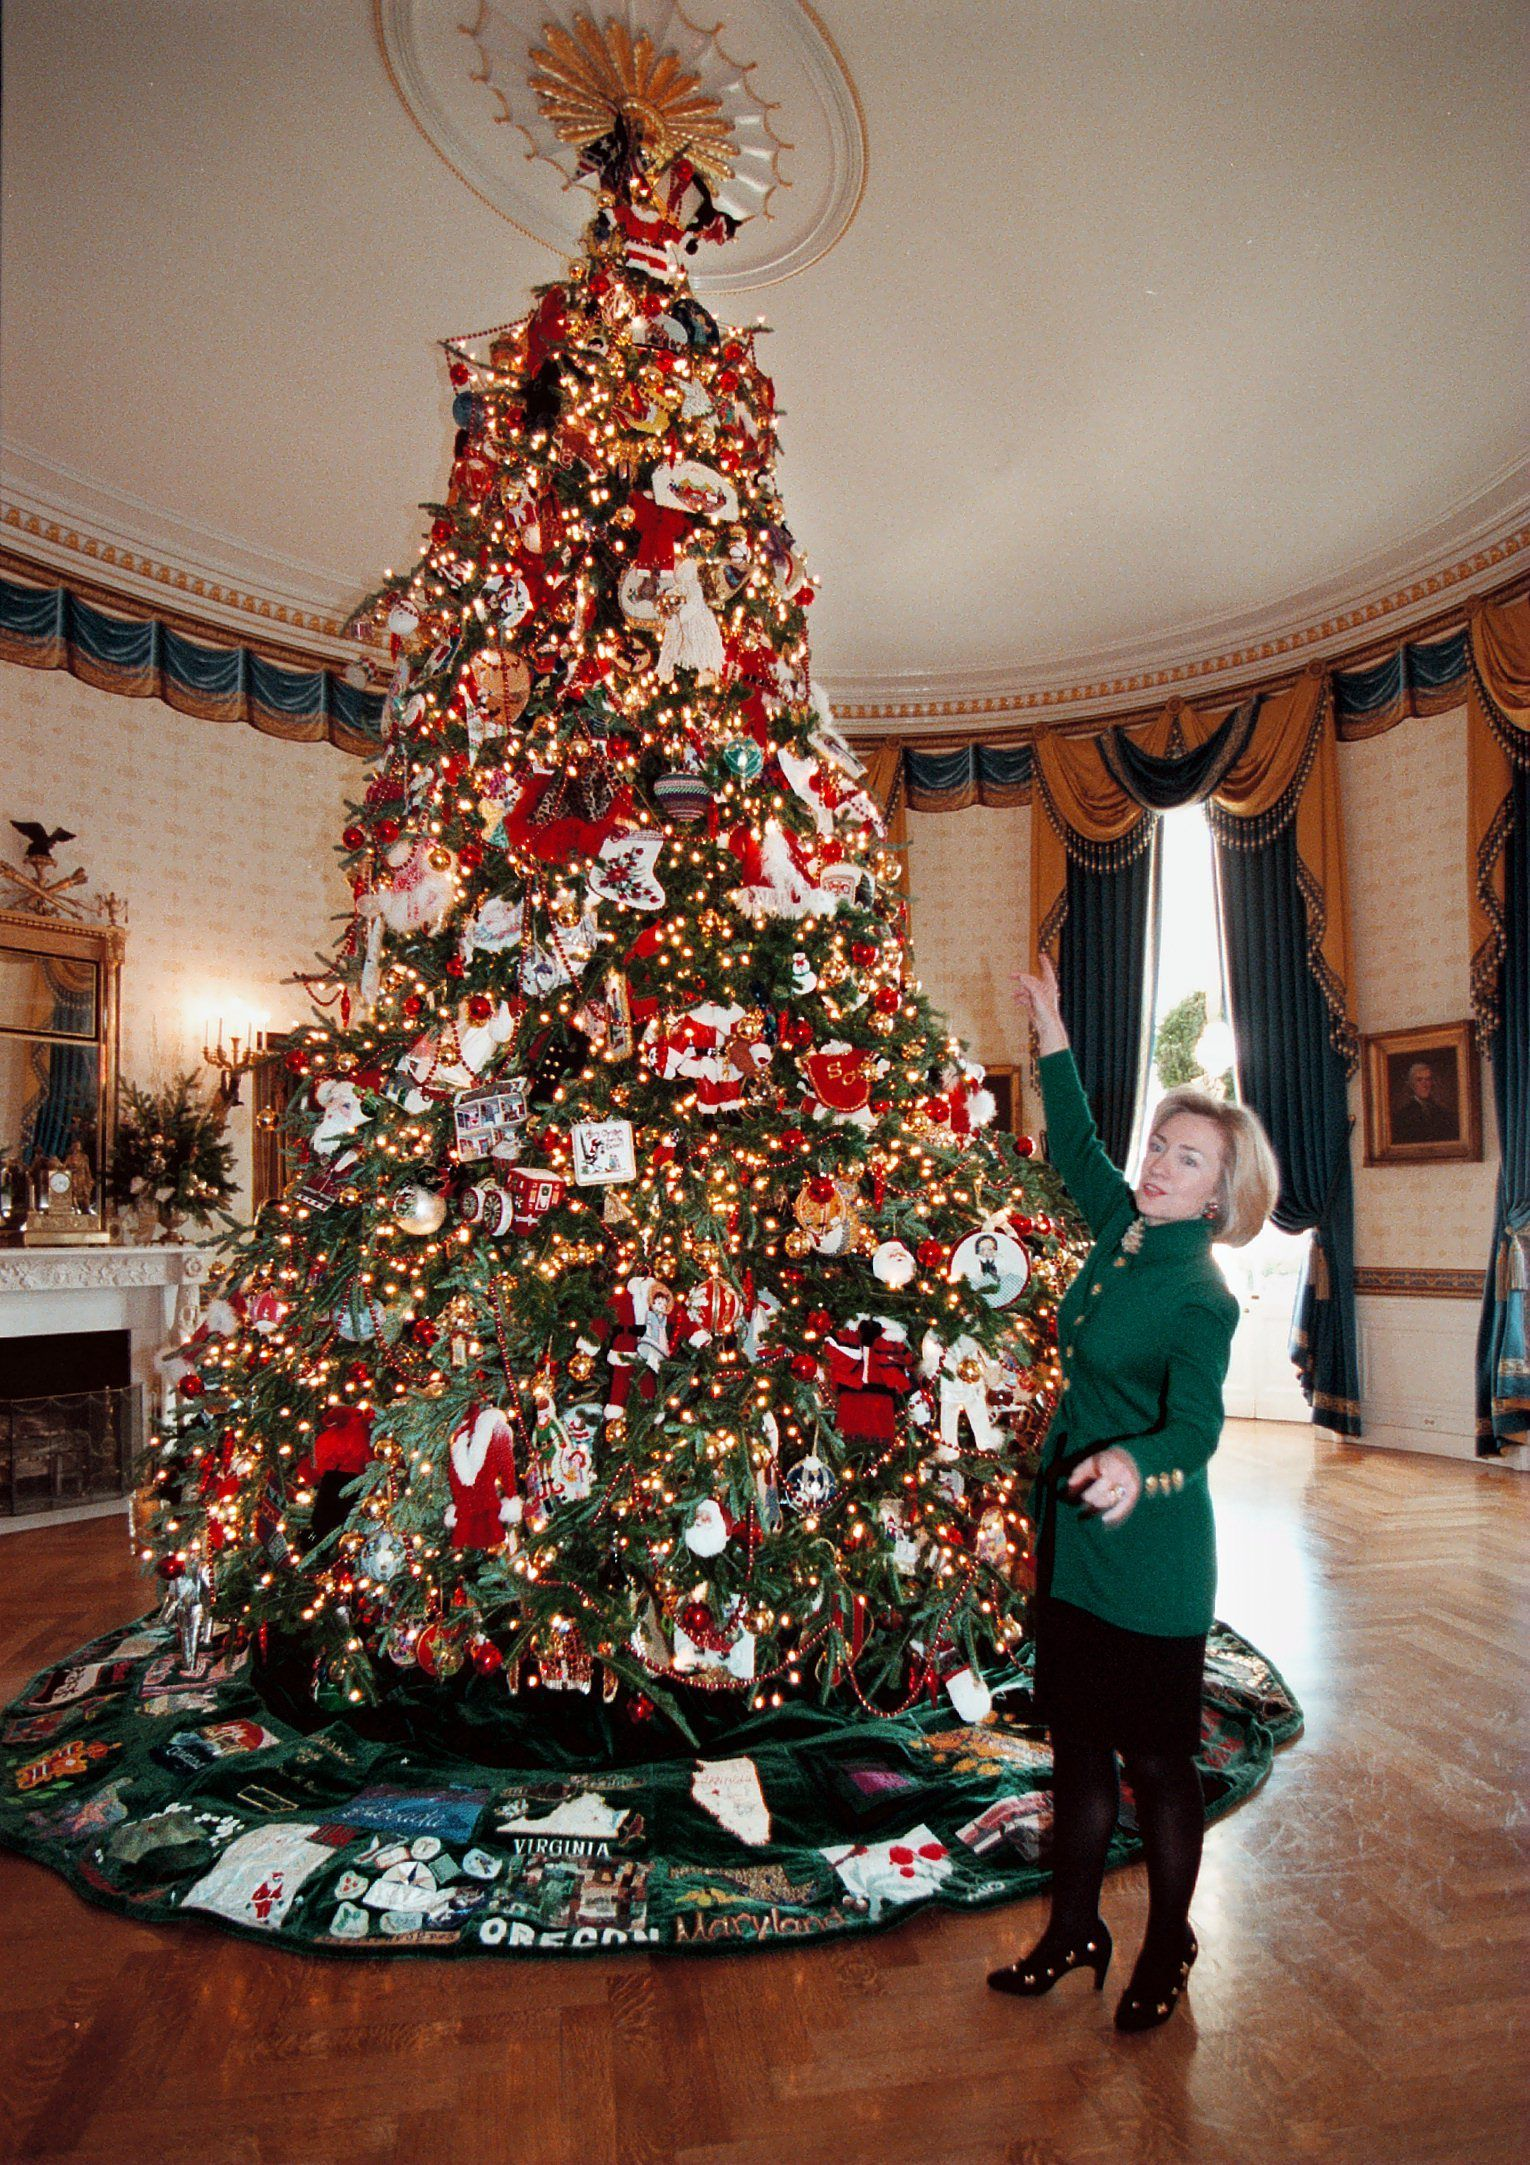 white house christmas decorations through the years - White House Christmas Decorations